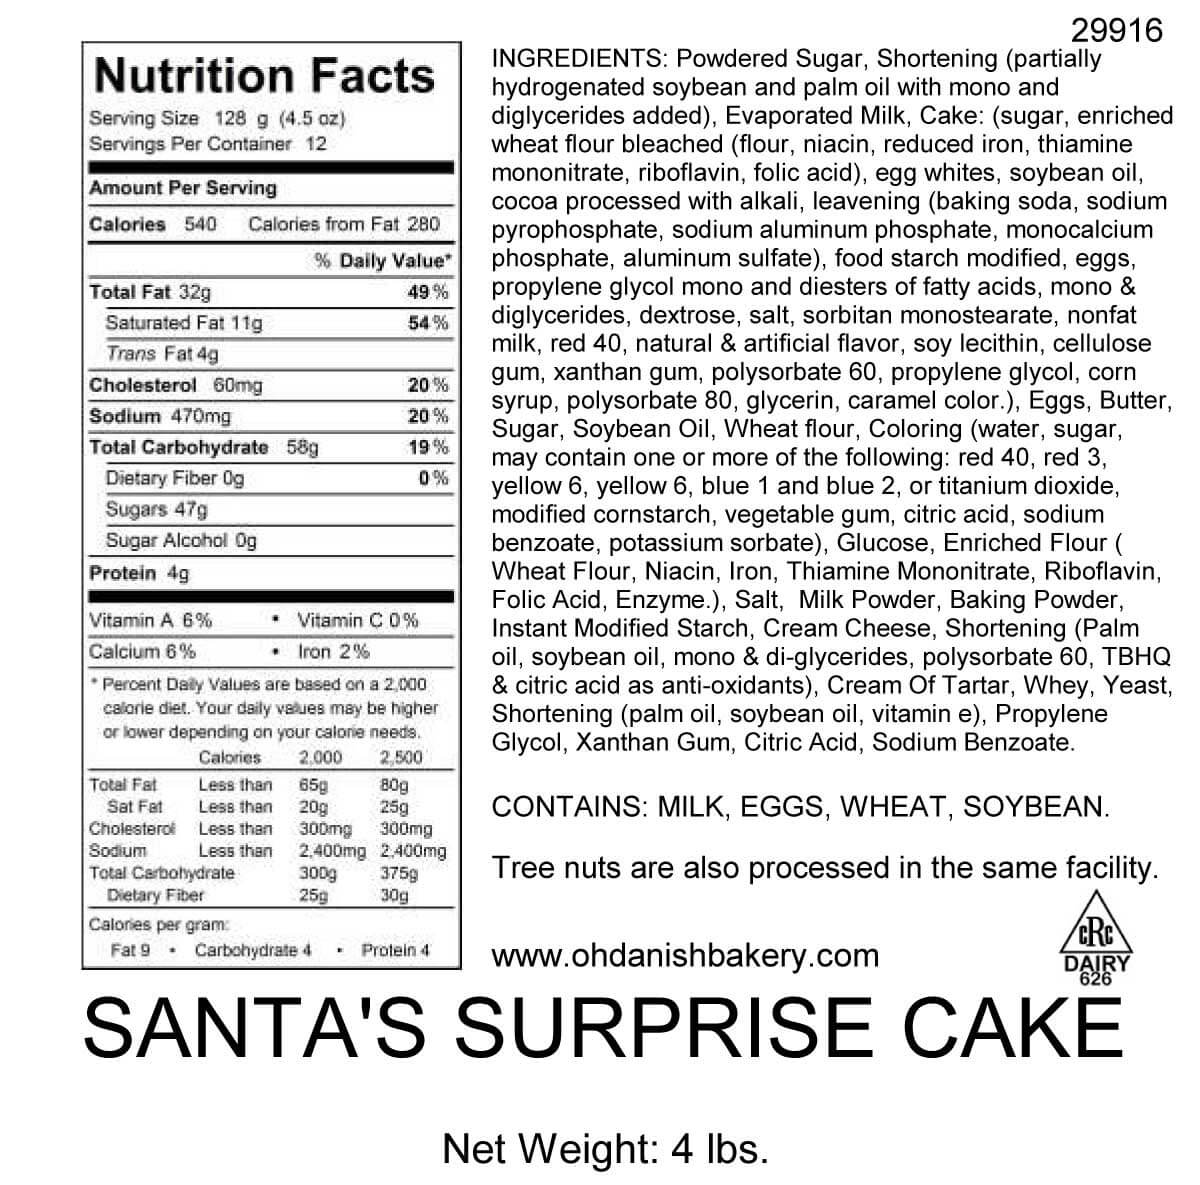 Nutritional Label for Santa's Surprise Cake